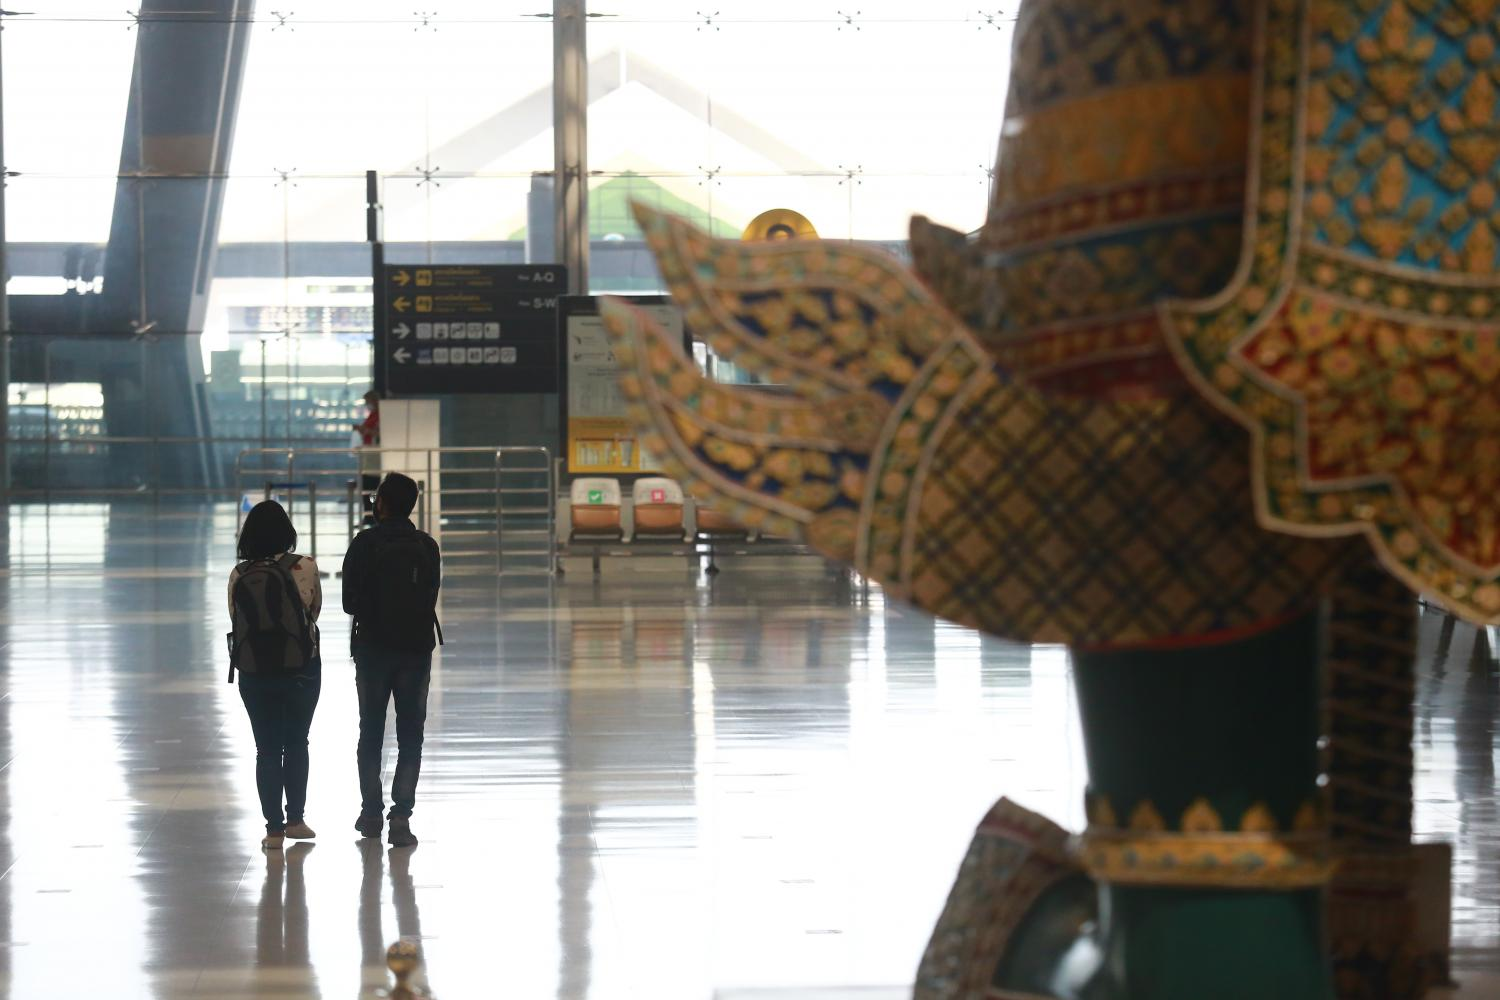 Suvarnabhumi airport, considered a regional hub, is all but vacant as a result of international travel restrictions. A TripAdvisor survey indicates tourists are inclined to travel to destinations where visitors must be vaccinated before travelling. Somchai Poomlard